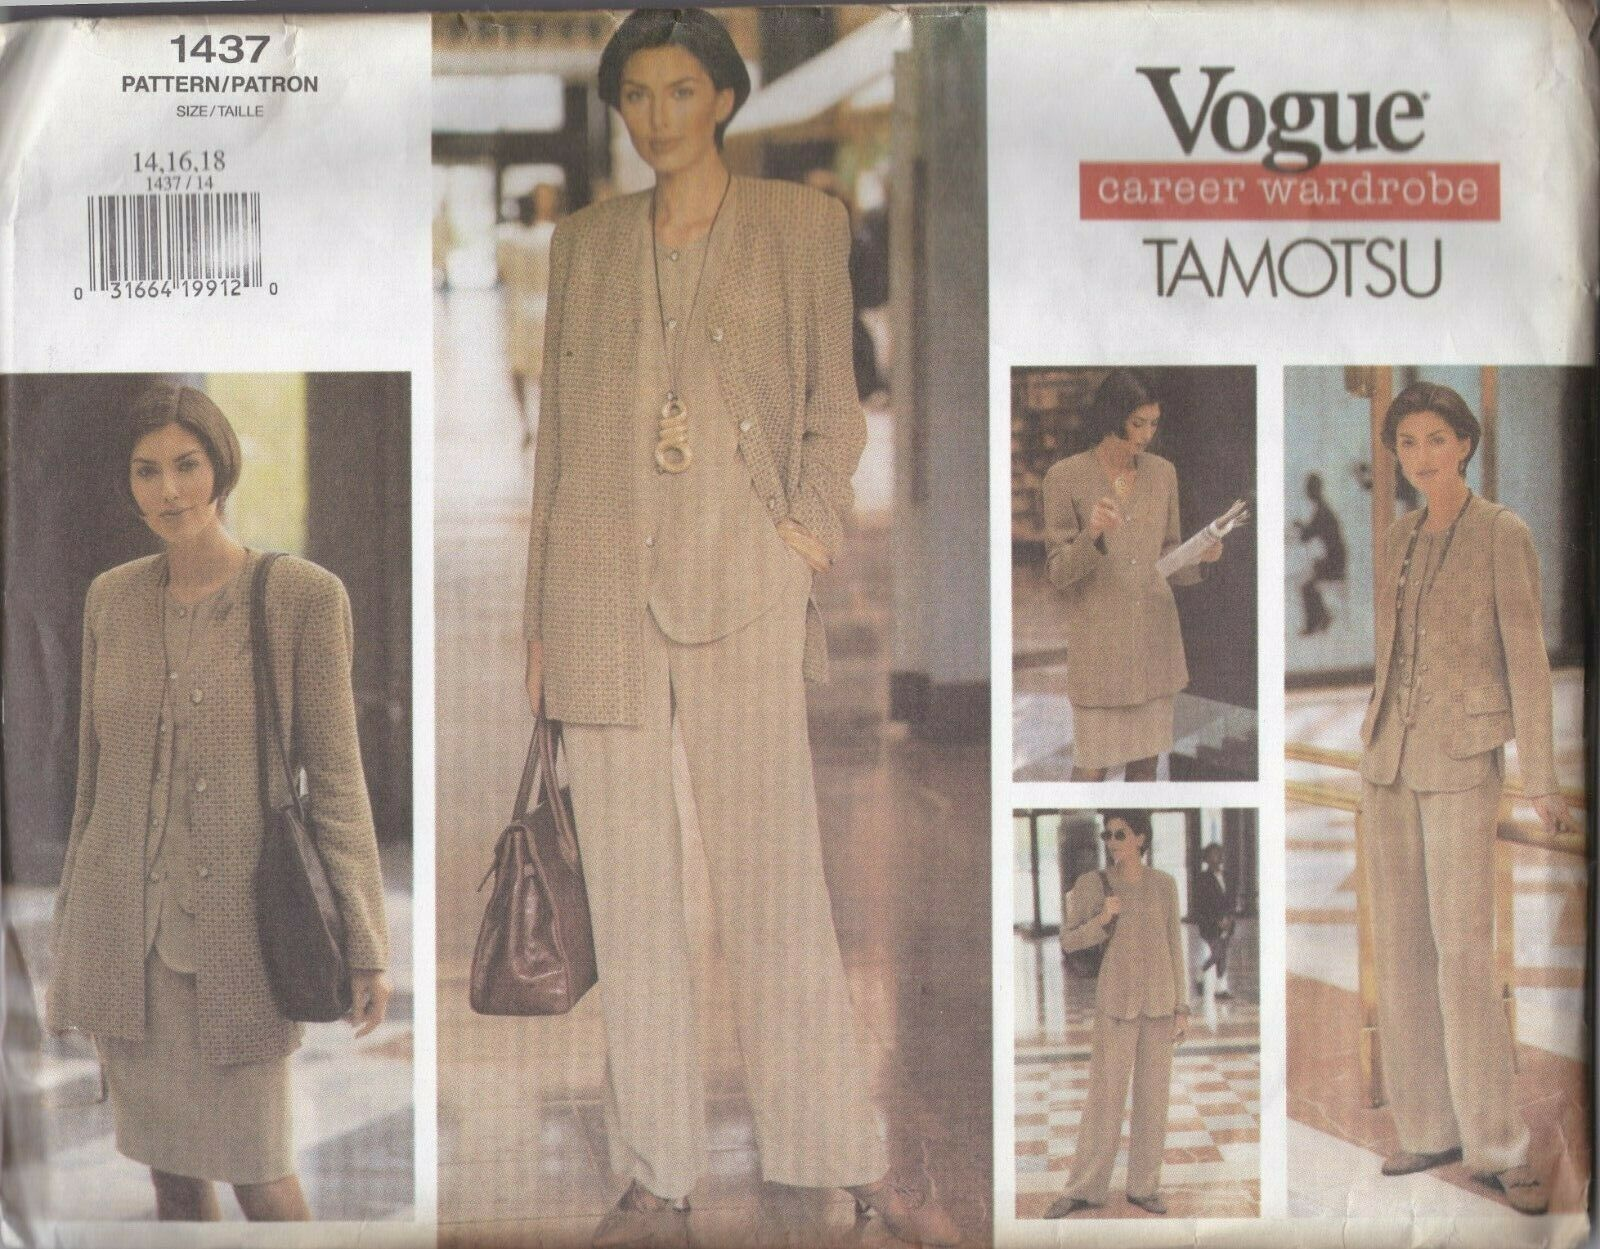 Primary image for Vogue 1437 Career Wardrobe by Tamotsu Capsule Wardrobe Collection 14-16-18